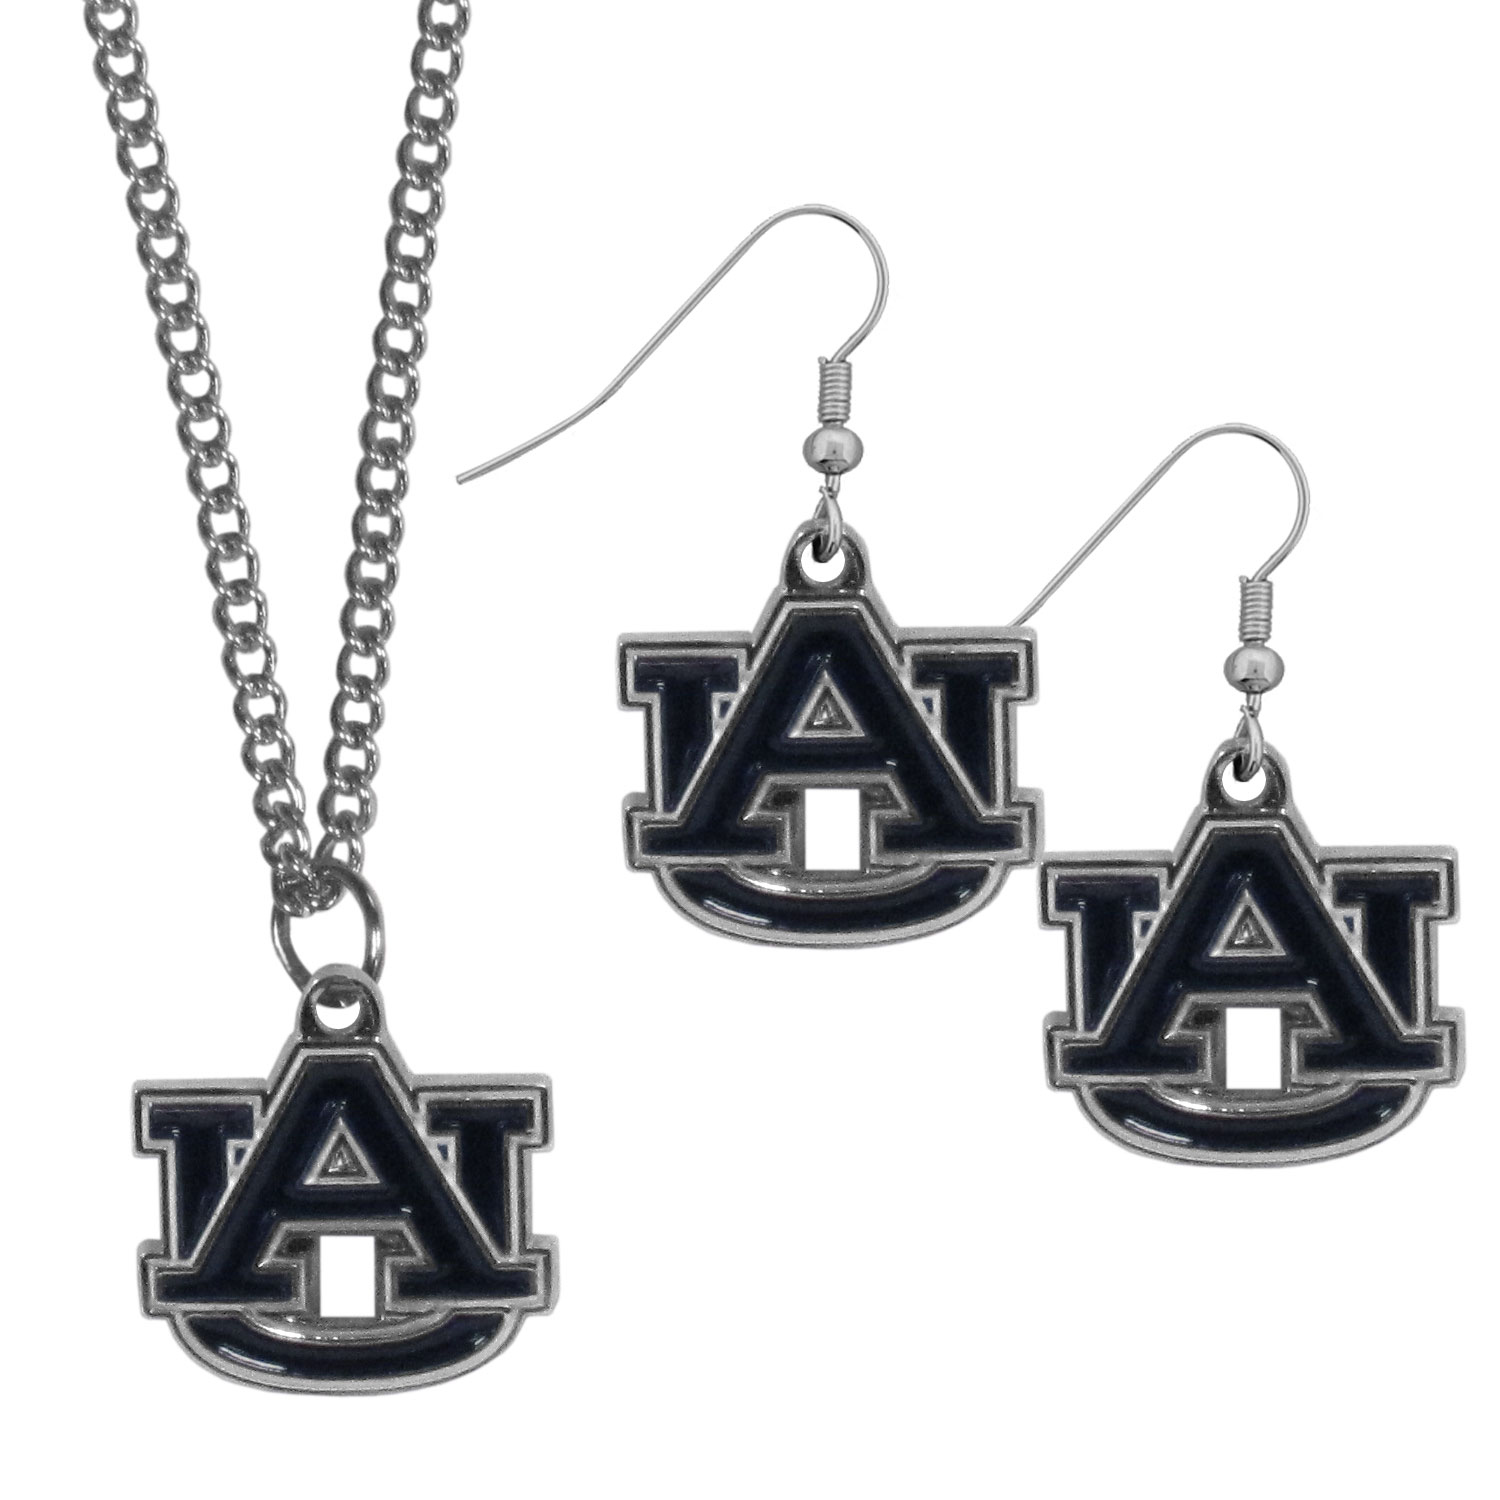 Auburn Tigers Dangle Earrings and Chain Necklace Set - This classic jewelry set contains are most popular Auburn Tigers dangle earrings and 22 inch chain necklace. The trendy, dangle earrings are lightweight and feature a fully cast metal team charm with enameled team colors. The matching necklace completes this fashion forward combo and is a spirited set that is perfect for game day but nice enough for everyday.